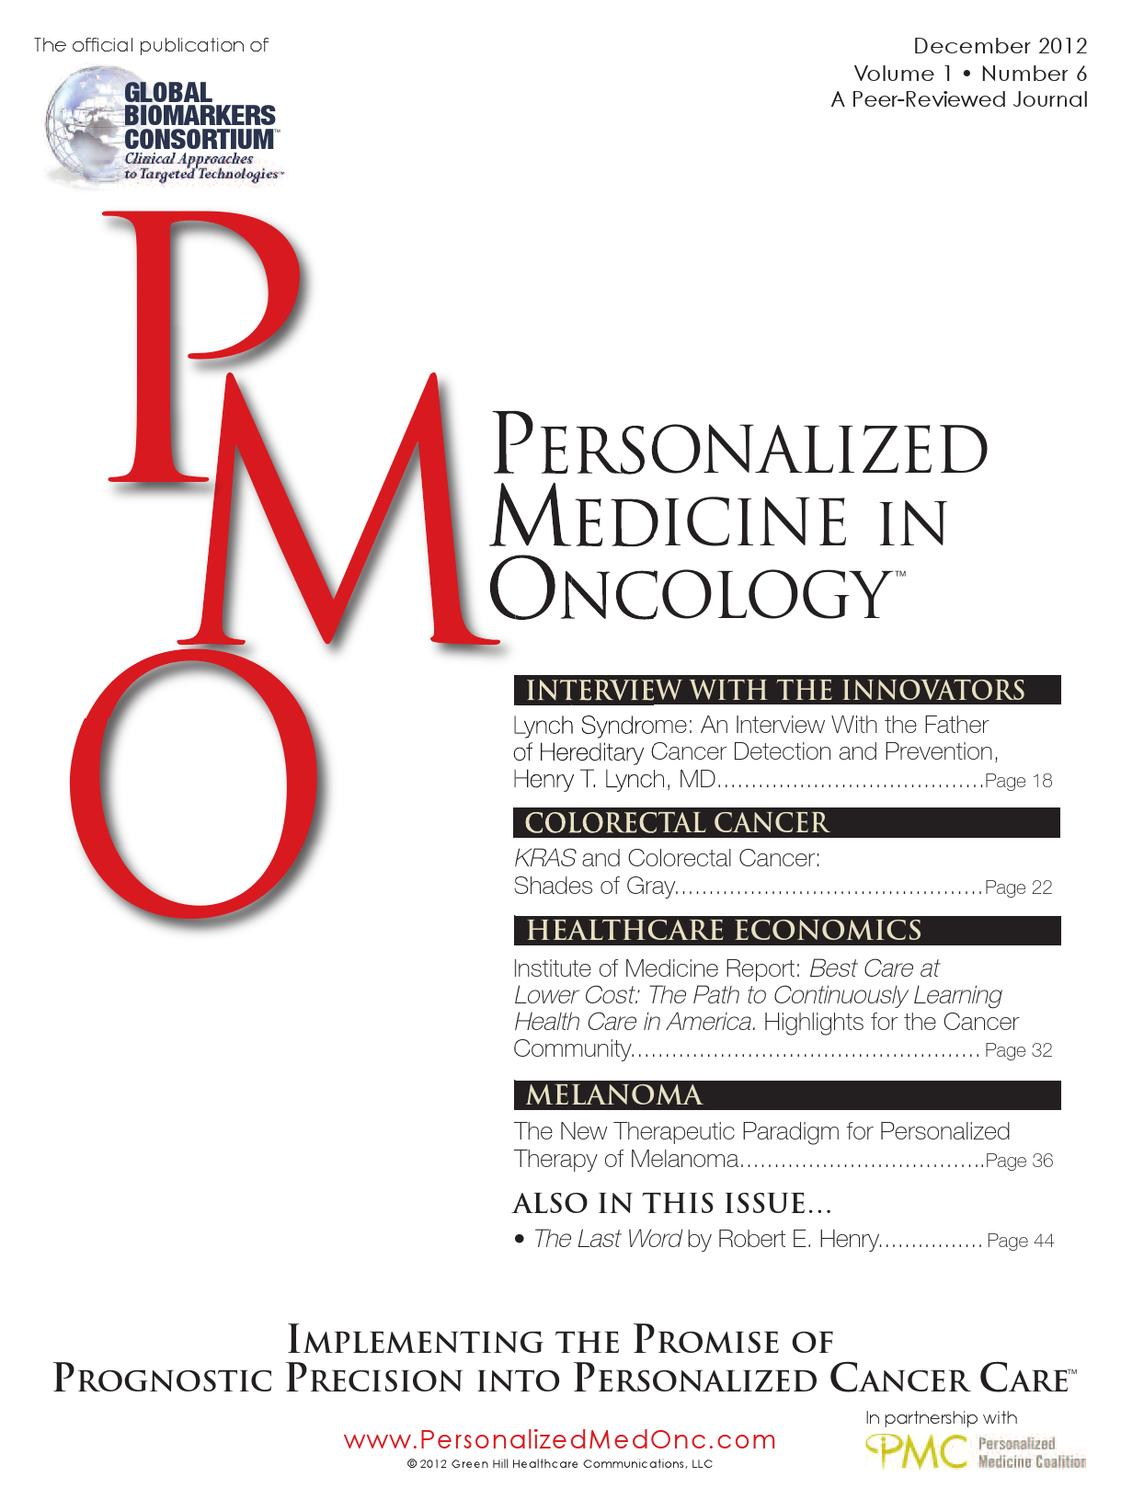 December 2012 Volume 1, Number 6 by The Oncology Nurse - issuu